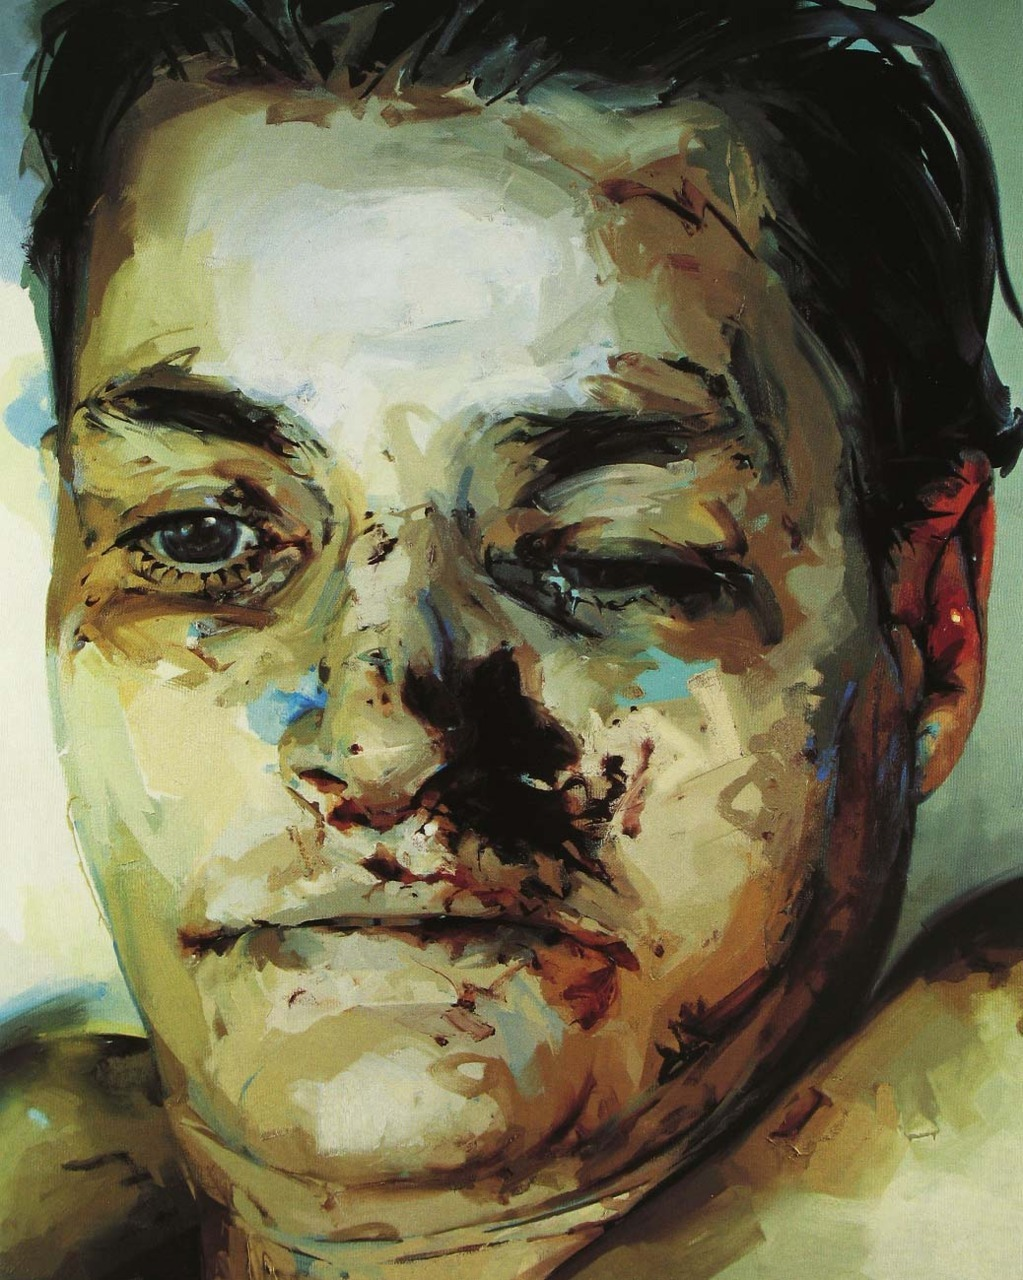 contemporary-art-blog:  Jenny Saville, Entry, 2003-2004  I saw several Jenny Saville's in the Logan Collection this weekend, a HUGE one right in their foyer. Incredible.